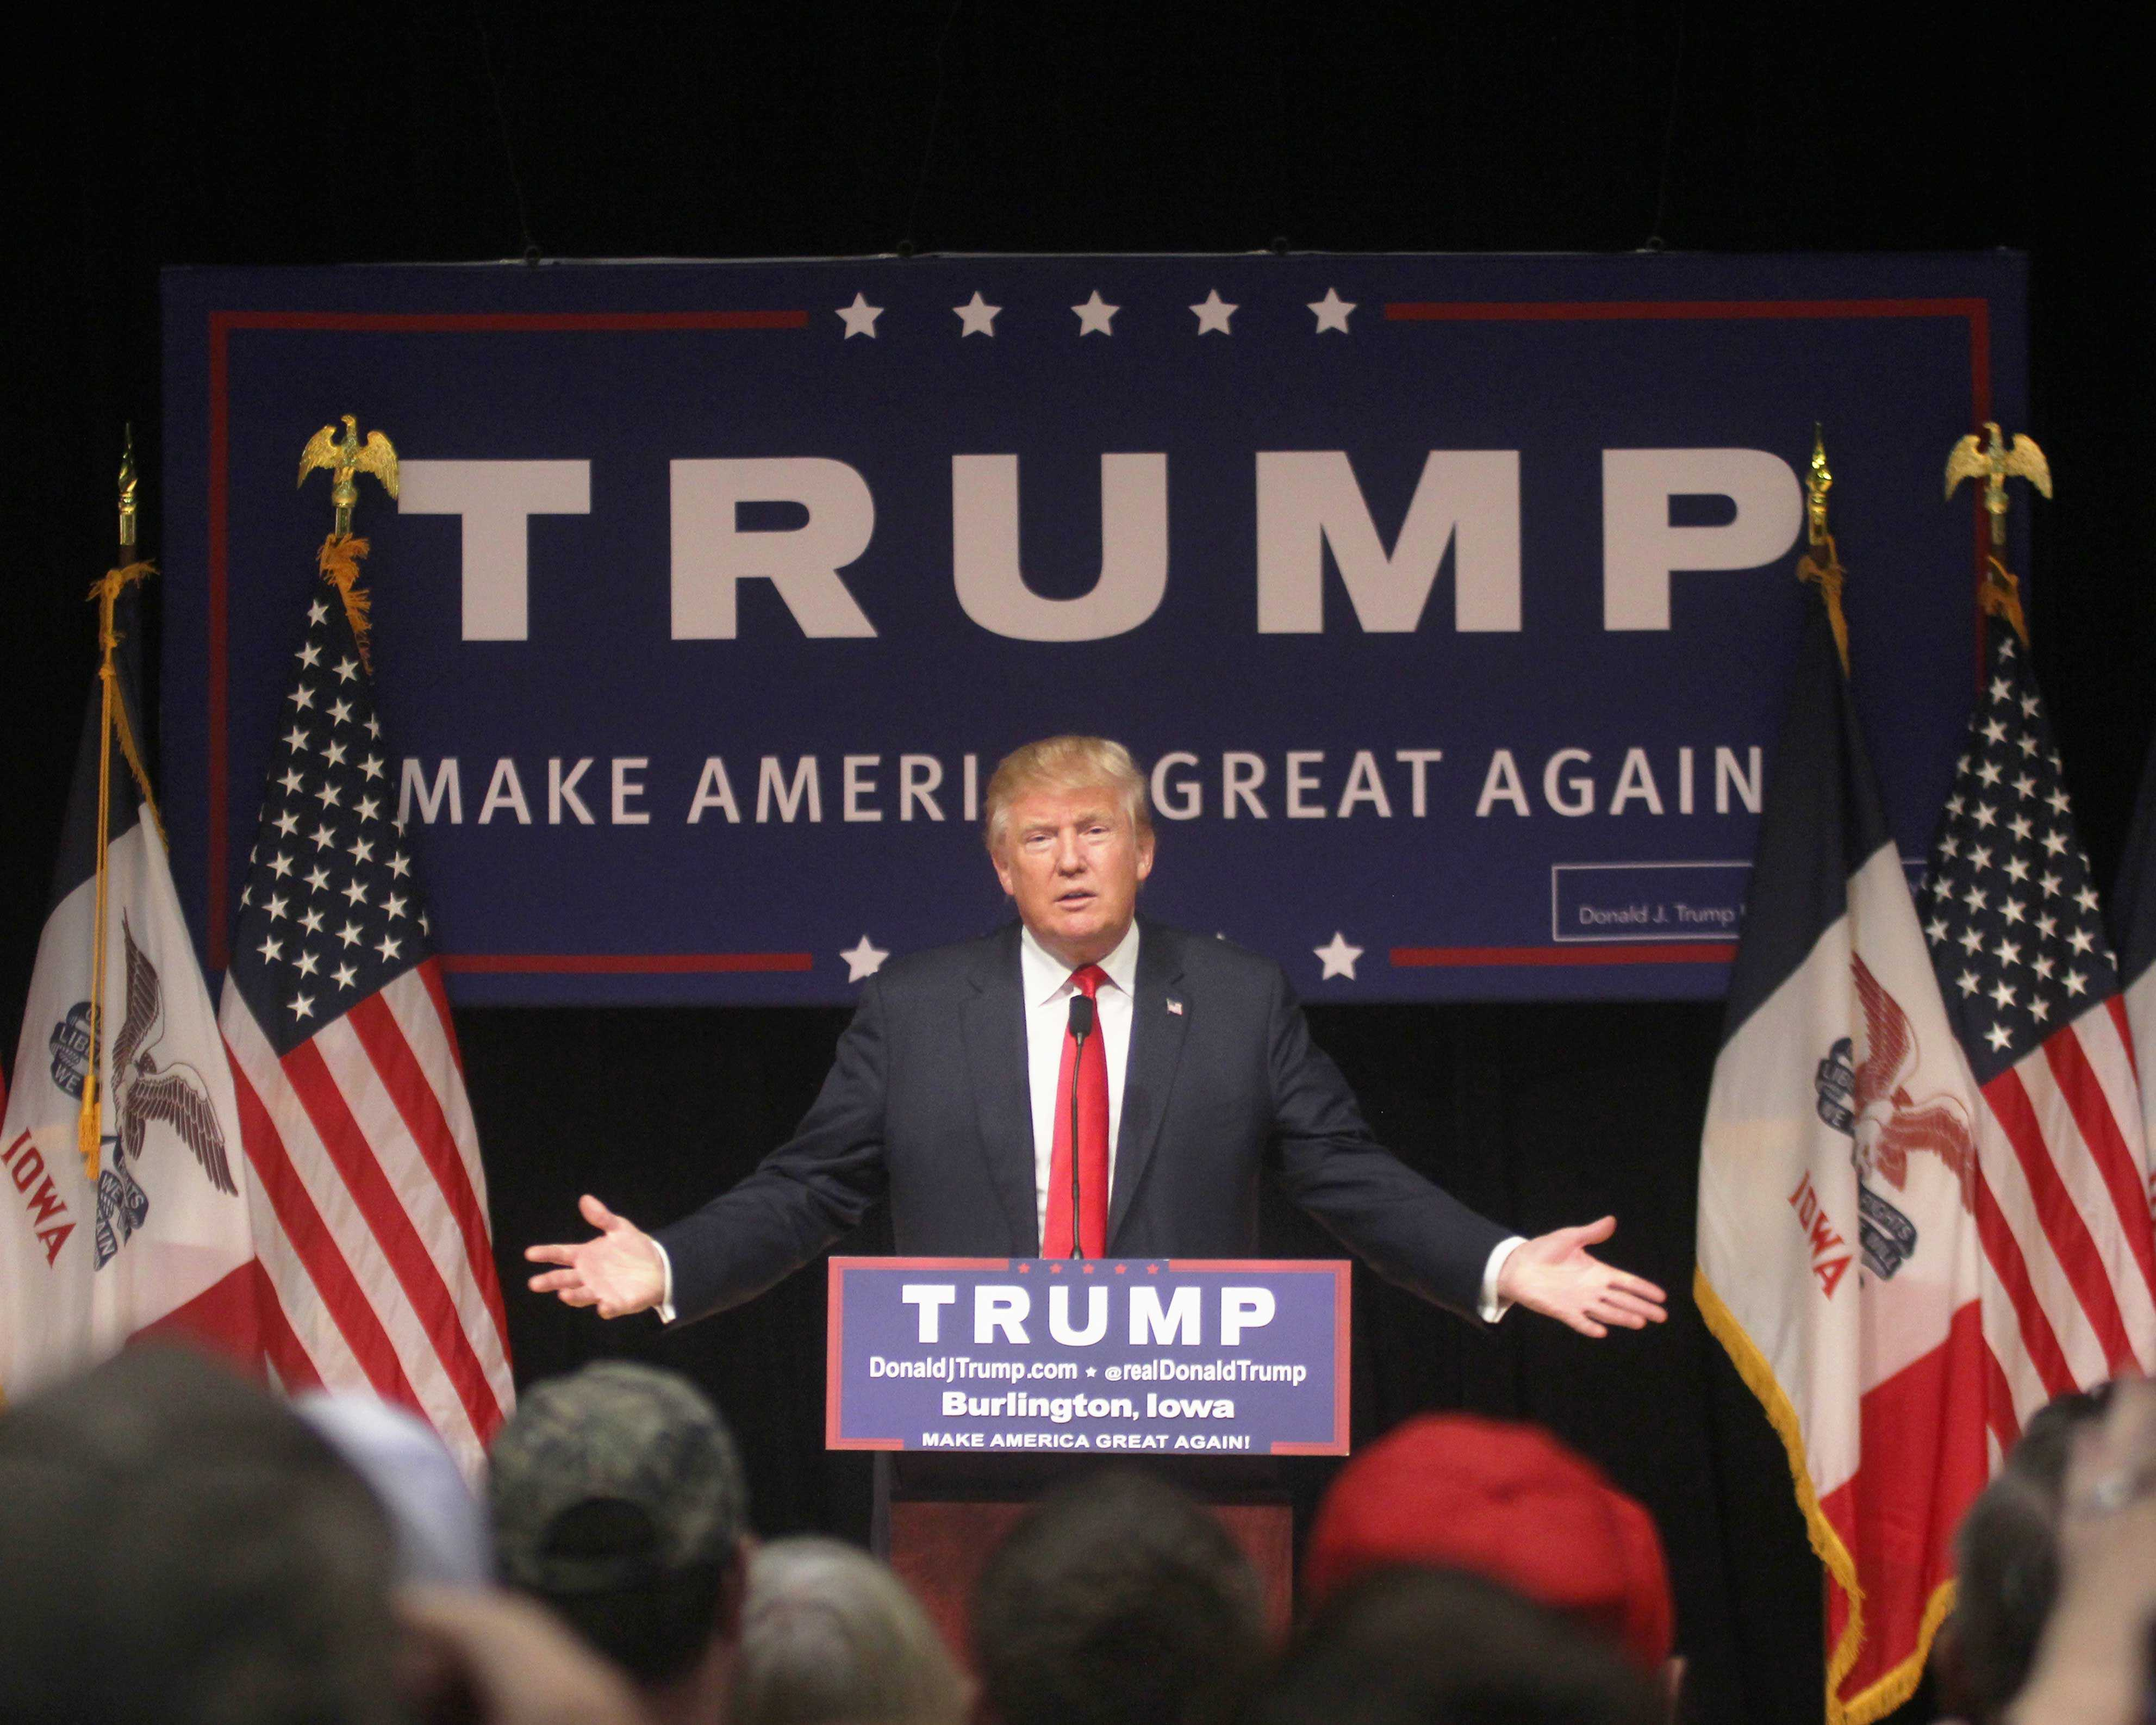 Donald Trump, the current Republican presidential frontrunner, speaks to a crowd of over 2,000 on Oct. 21 in Burlington, Iowa for a campaign rally.  Trump's speech criticizes President Barack Obama and past Republican candidates John McCain and Mitt Romney.